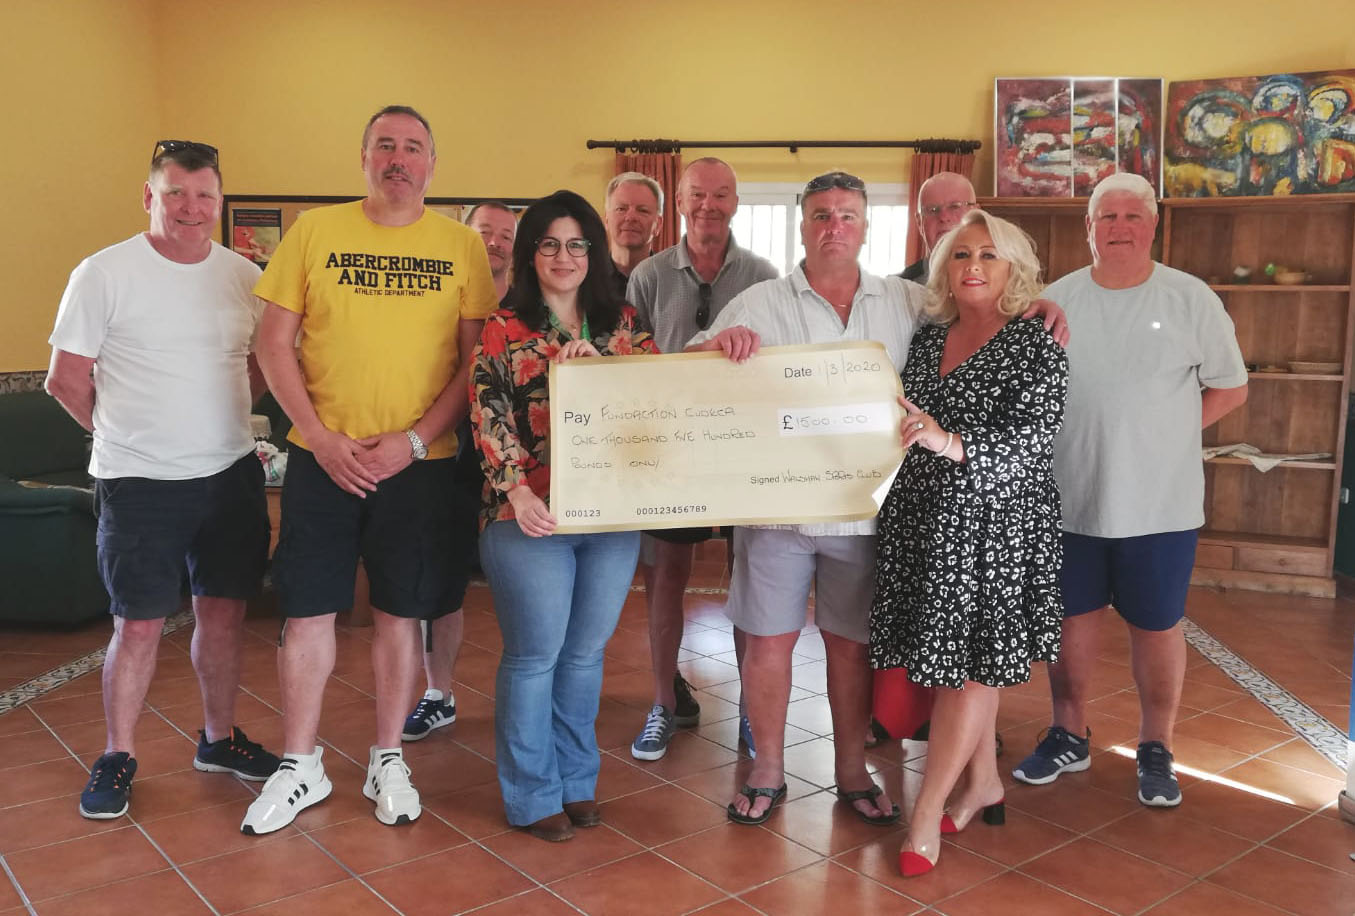 Family & friends of Anita Ferriday travel from the UK to our centre in Benalmadena to present their cheque donation